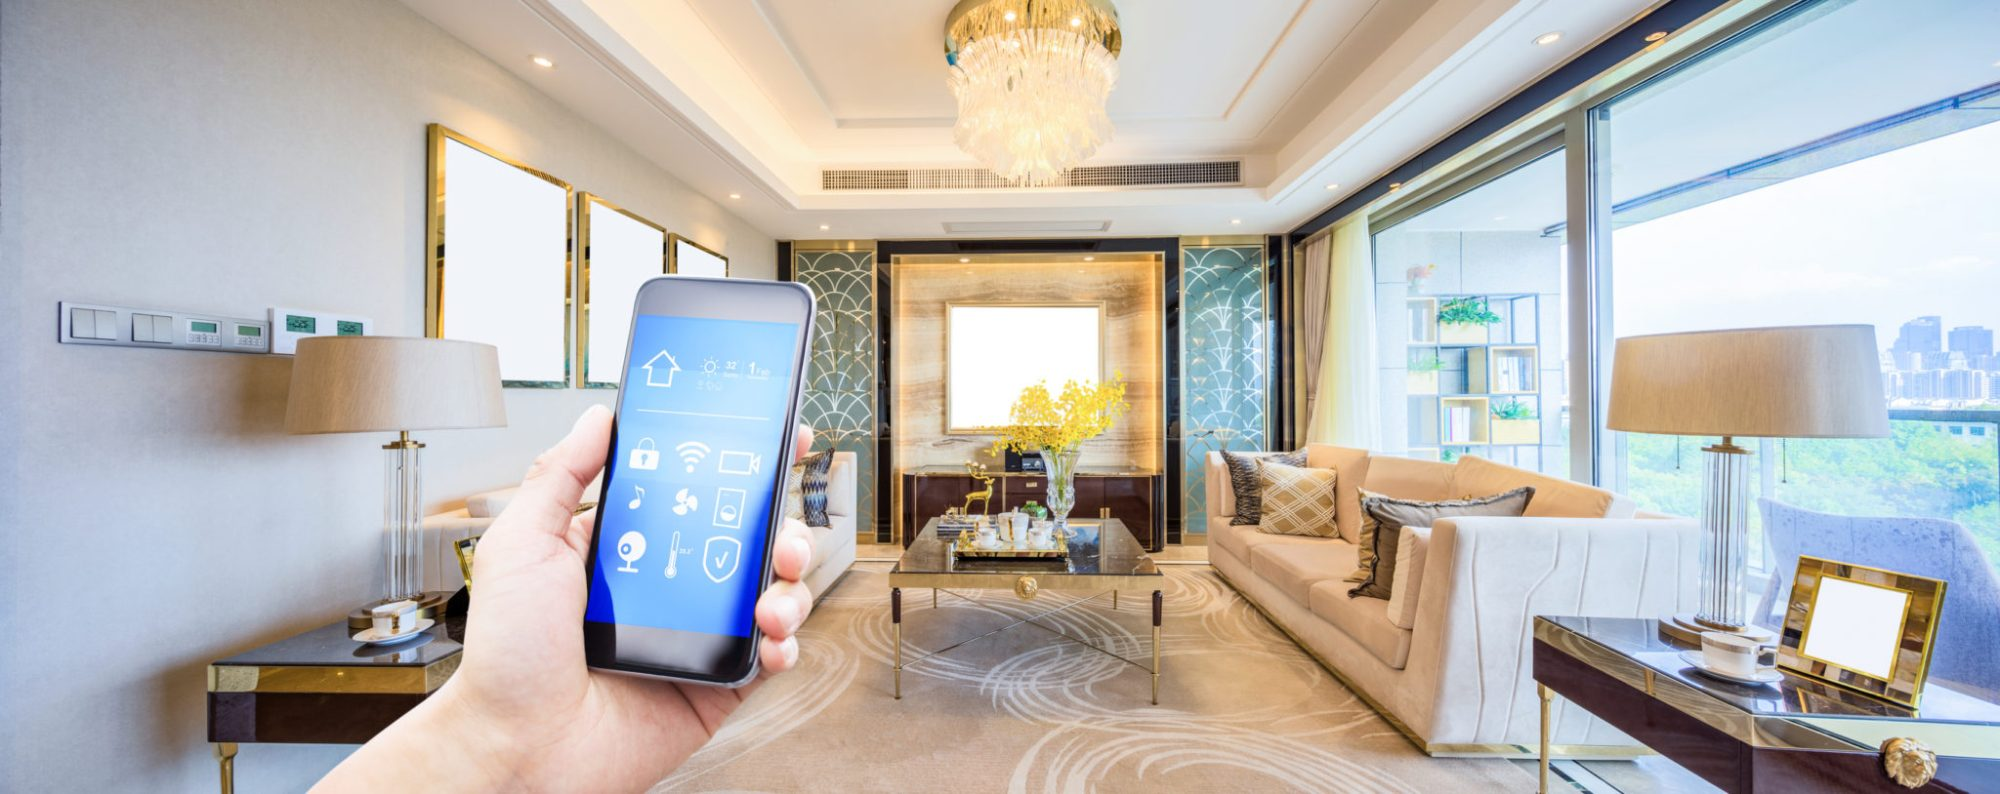 hight resolution of control your home